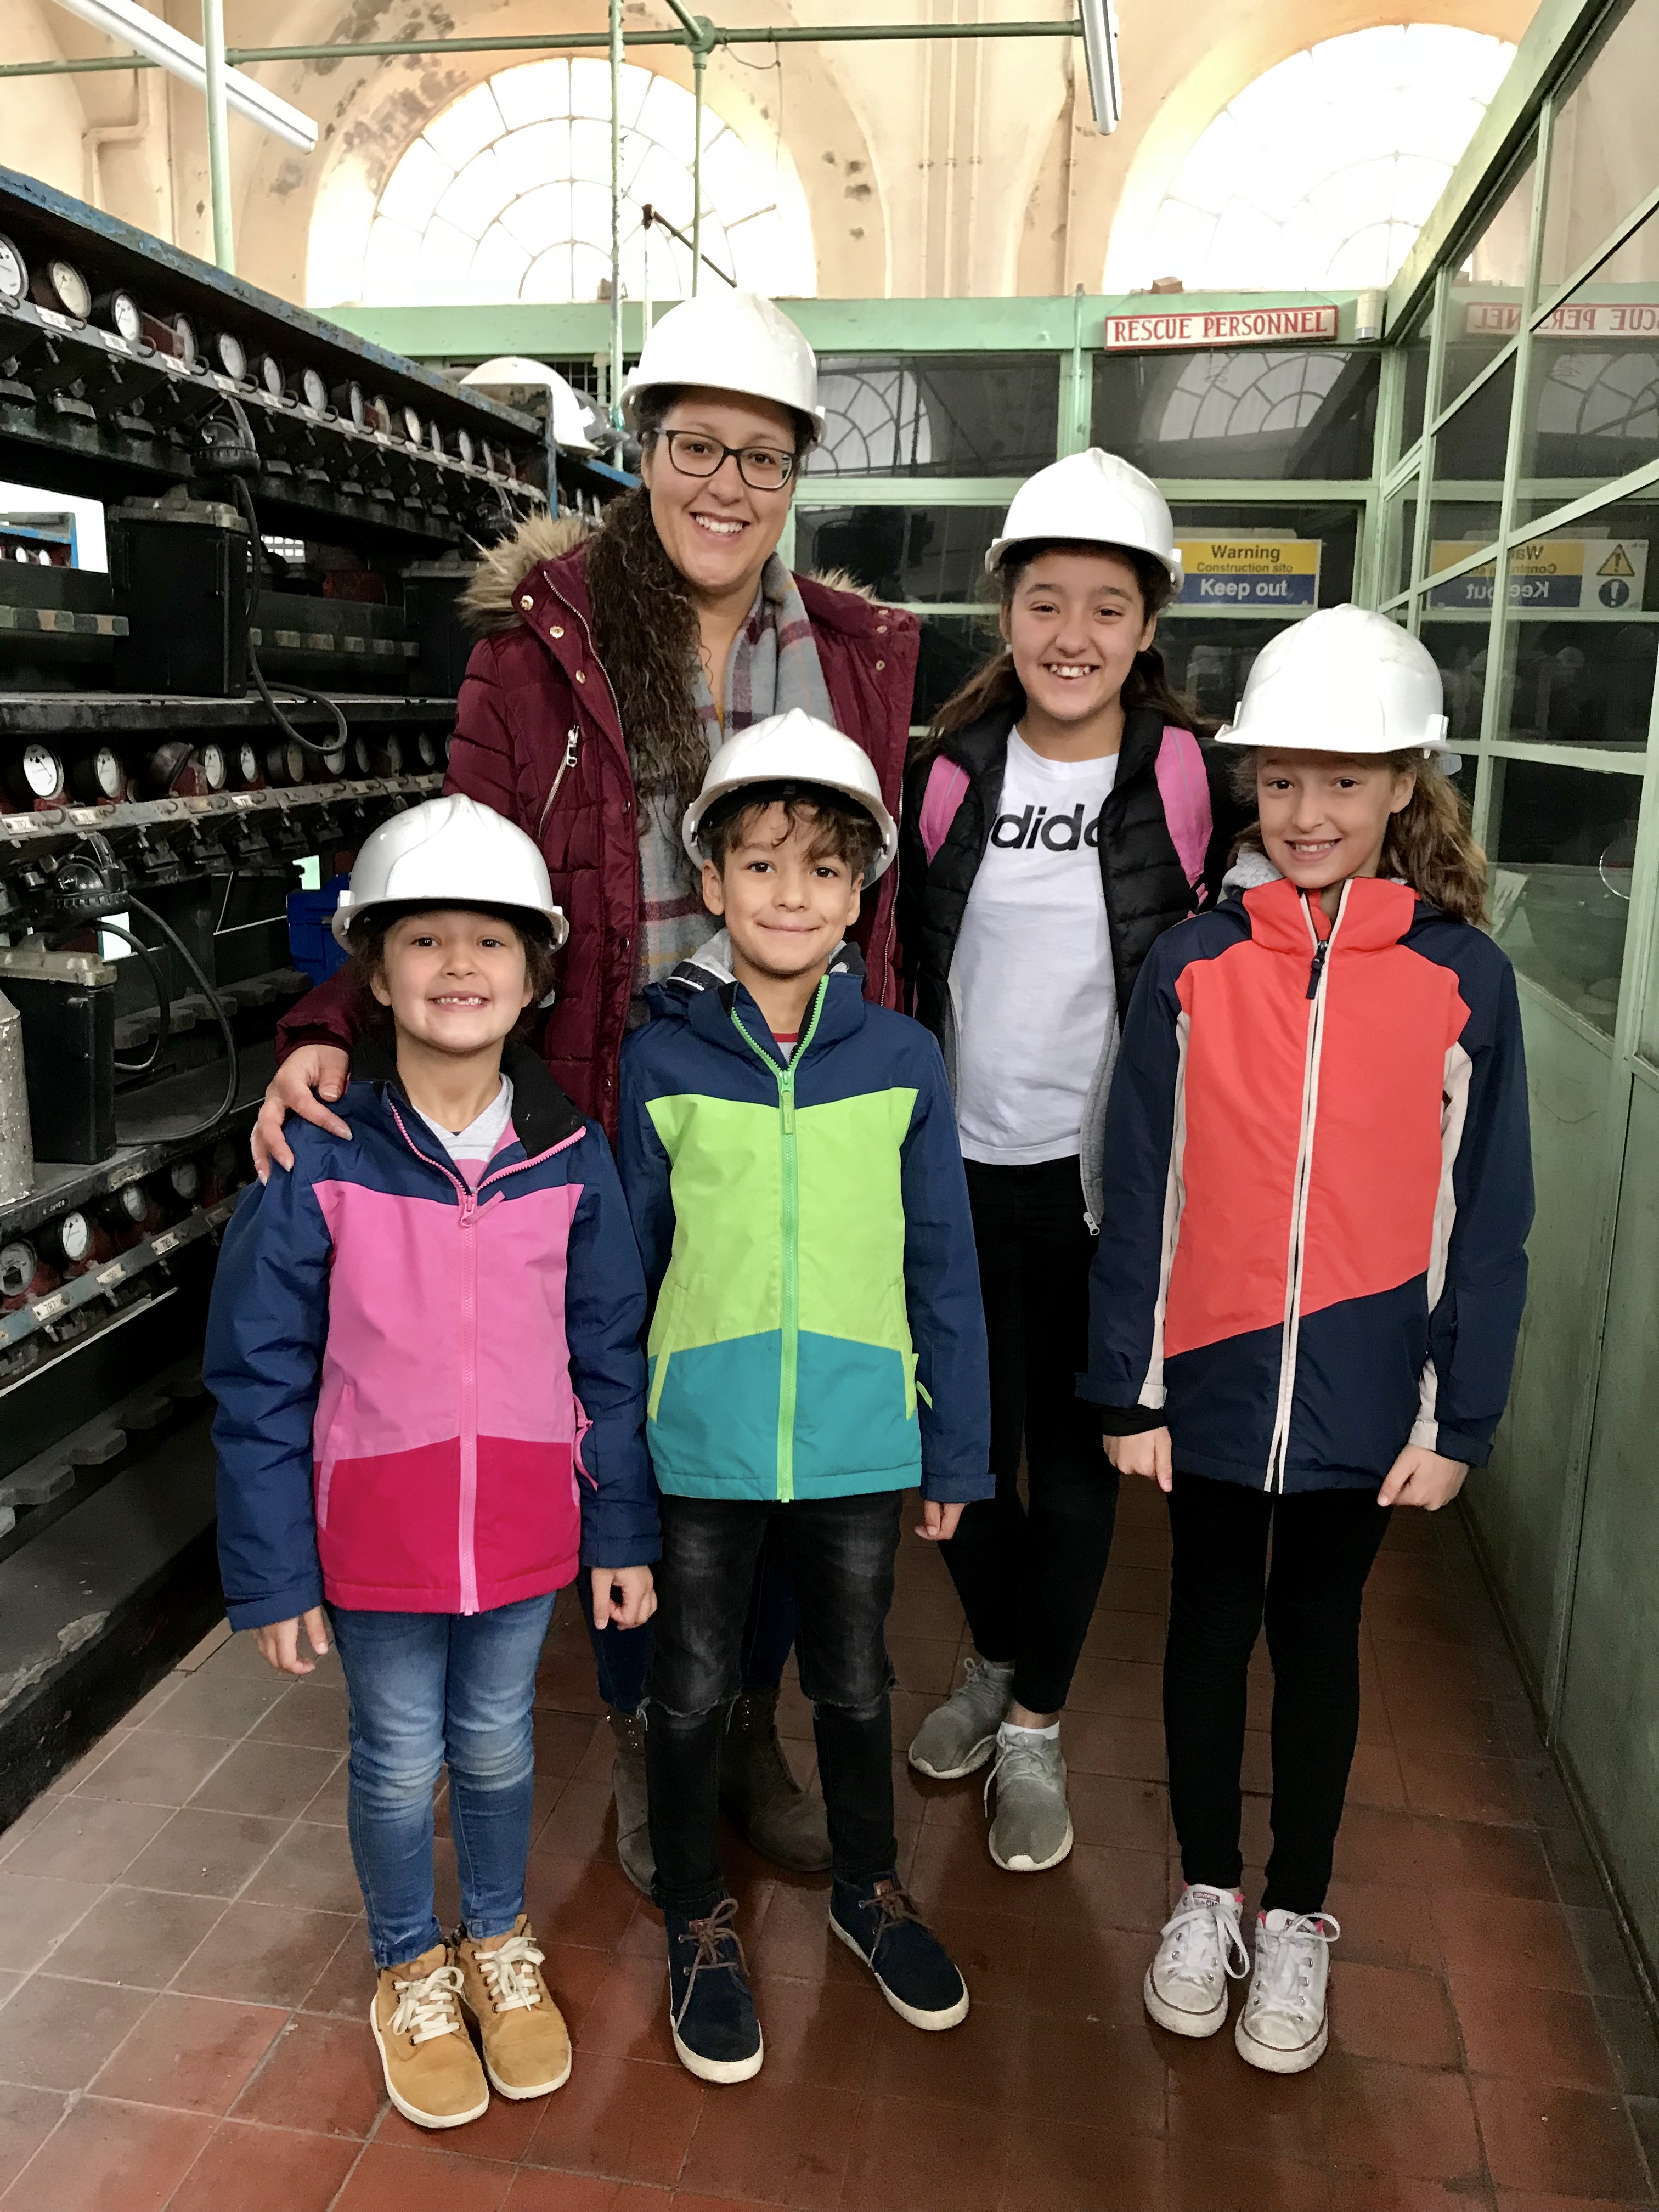 Family Day Out in The Rhondda Valley – Love The Valleys